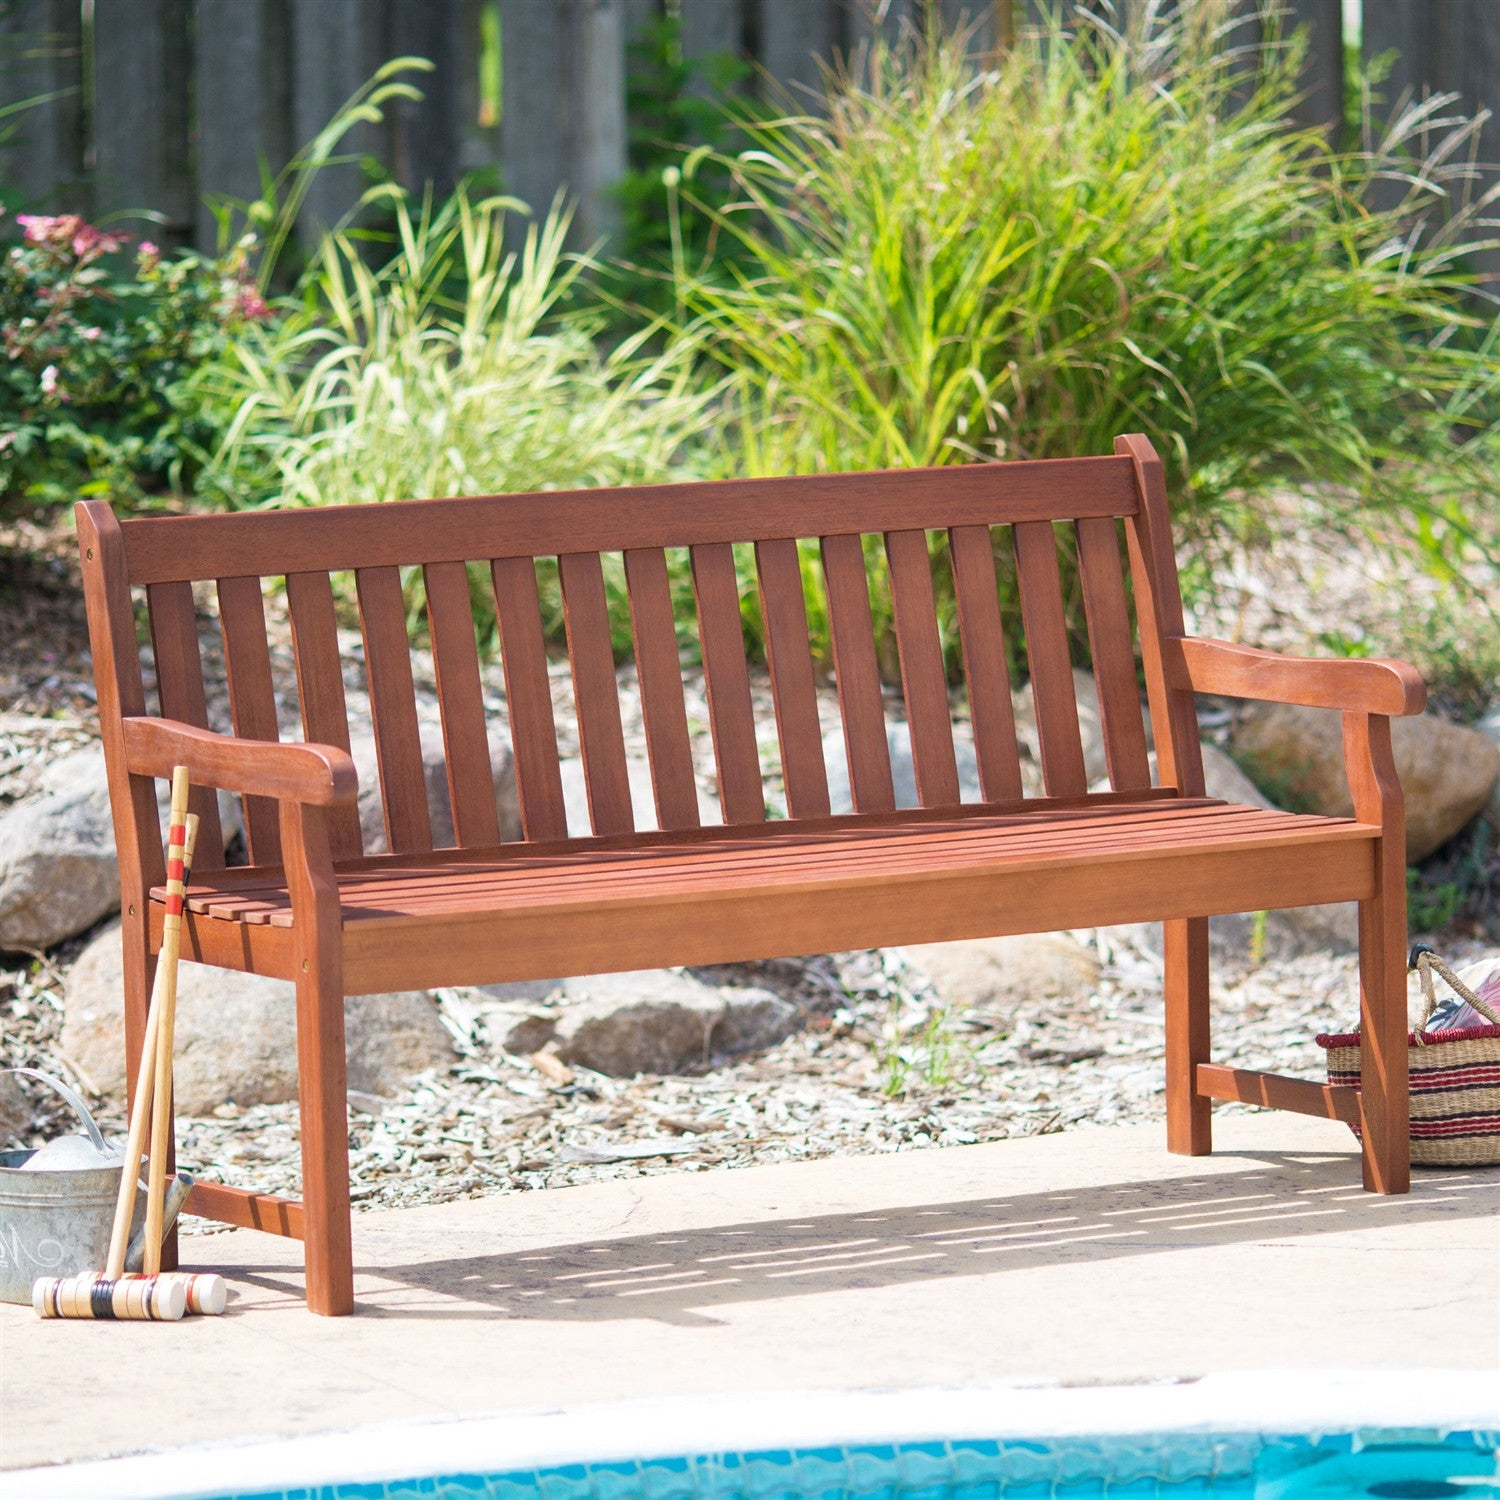 4 ft outdoor love seat garden bench in natural wood finish